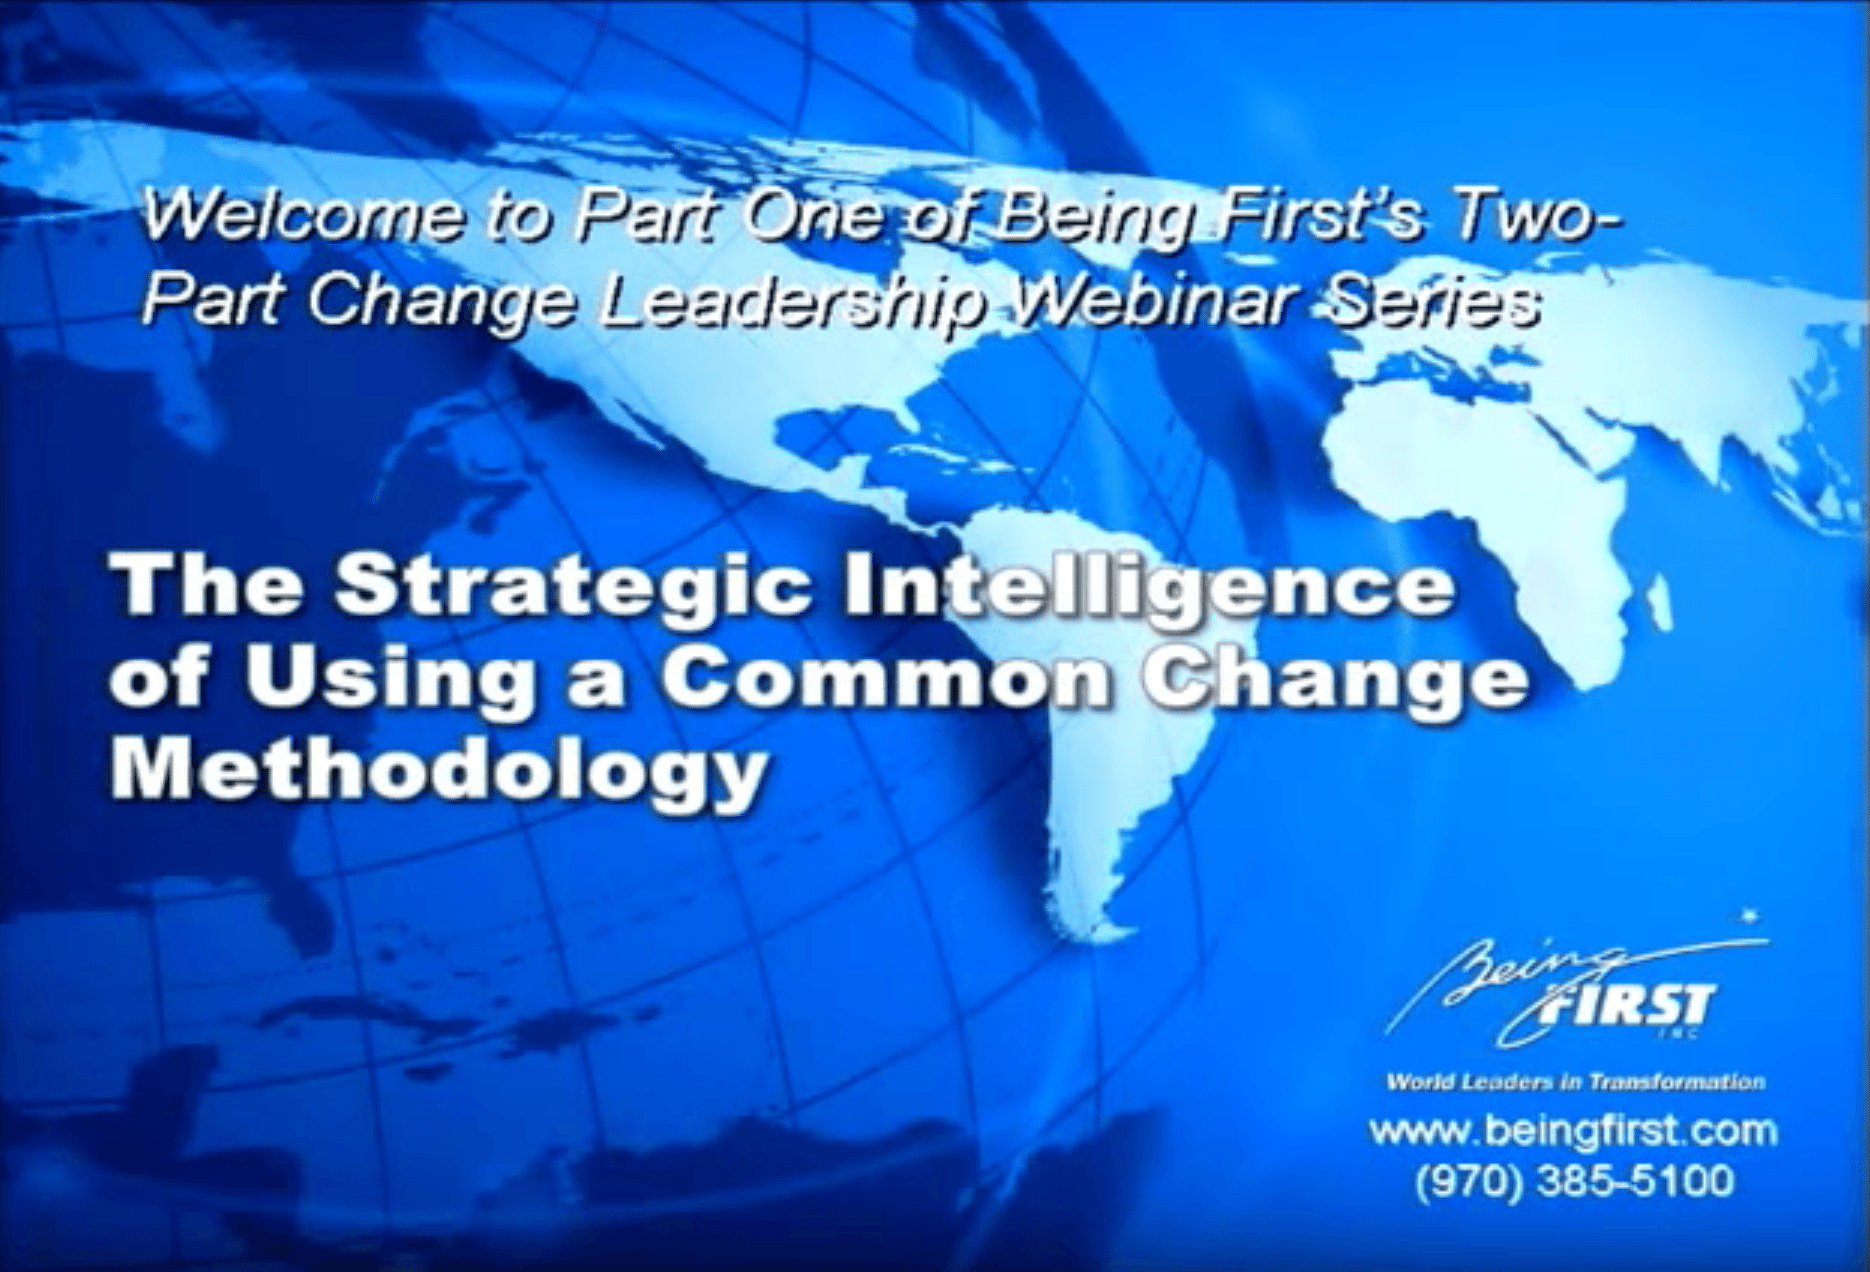 Strategic Intelligence of Using a Common Change Methodology